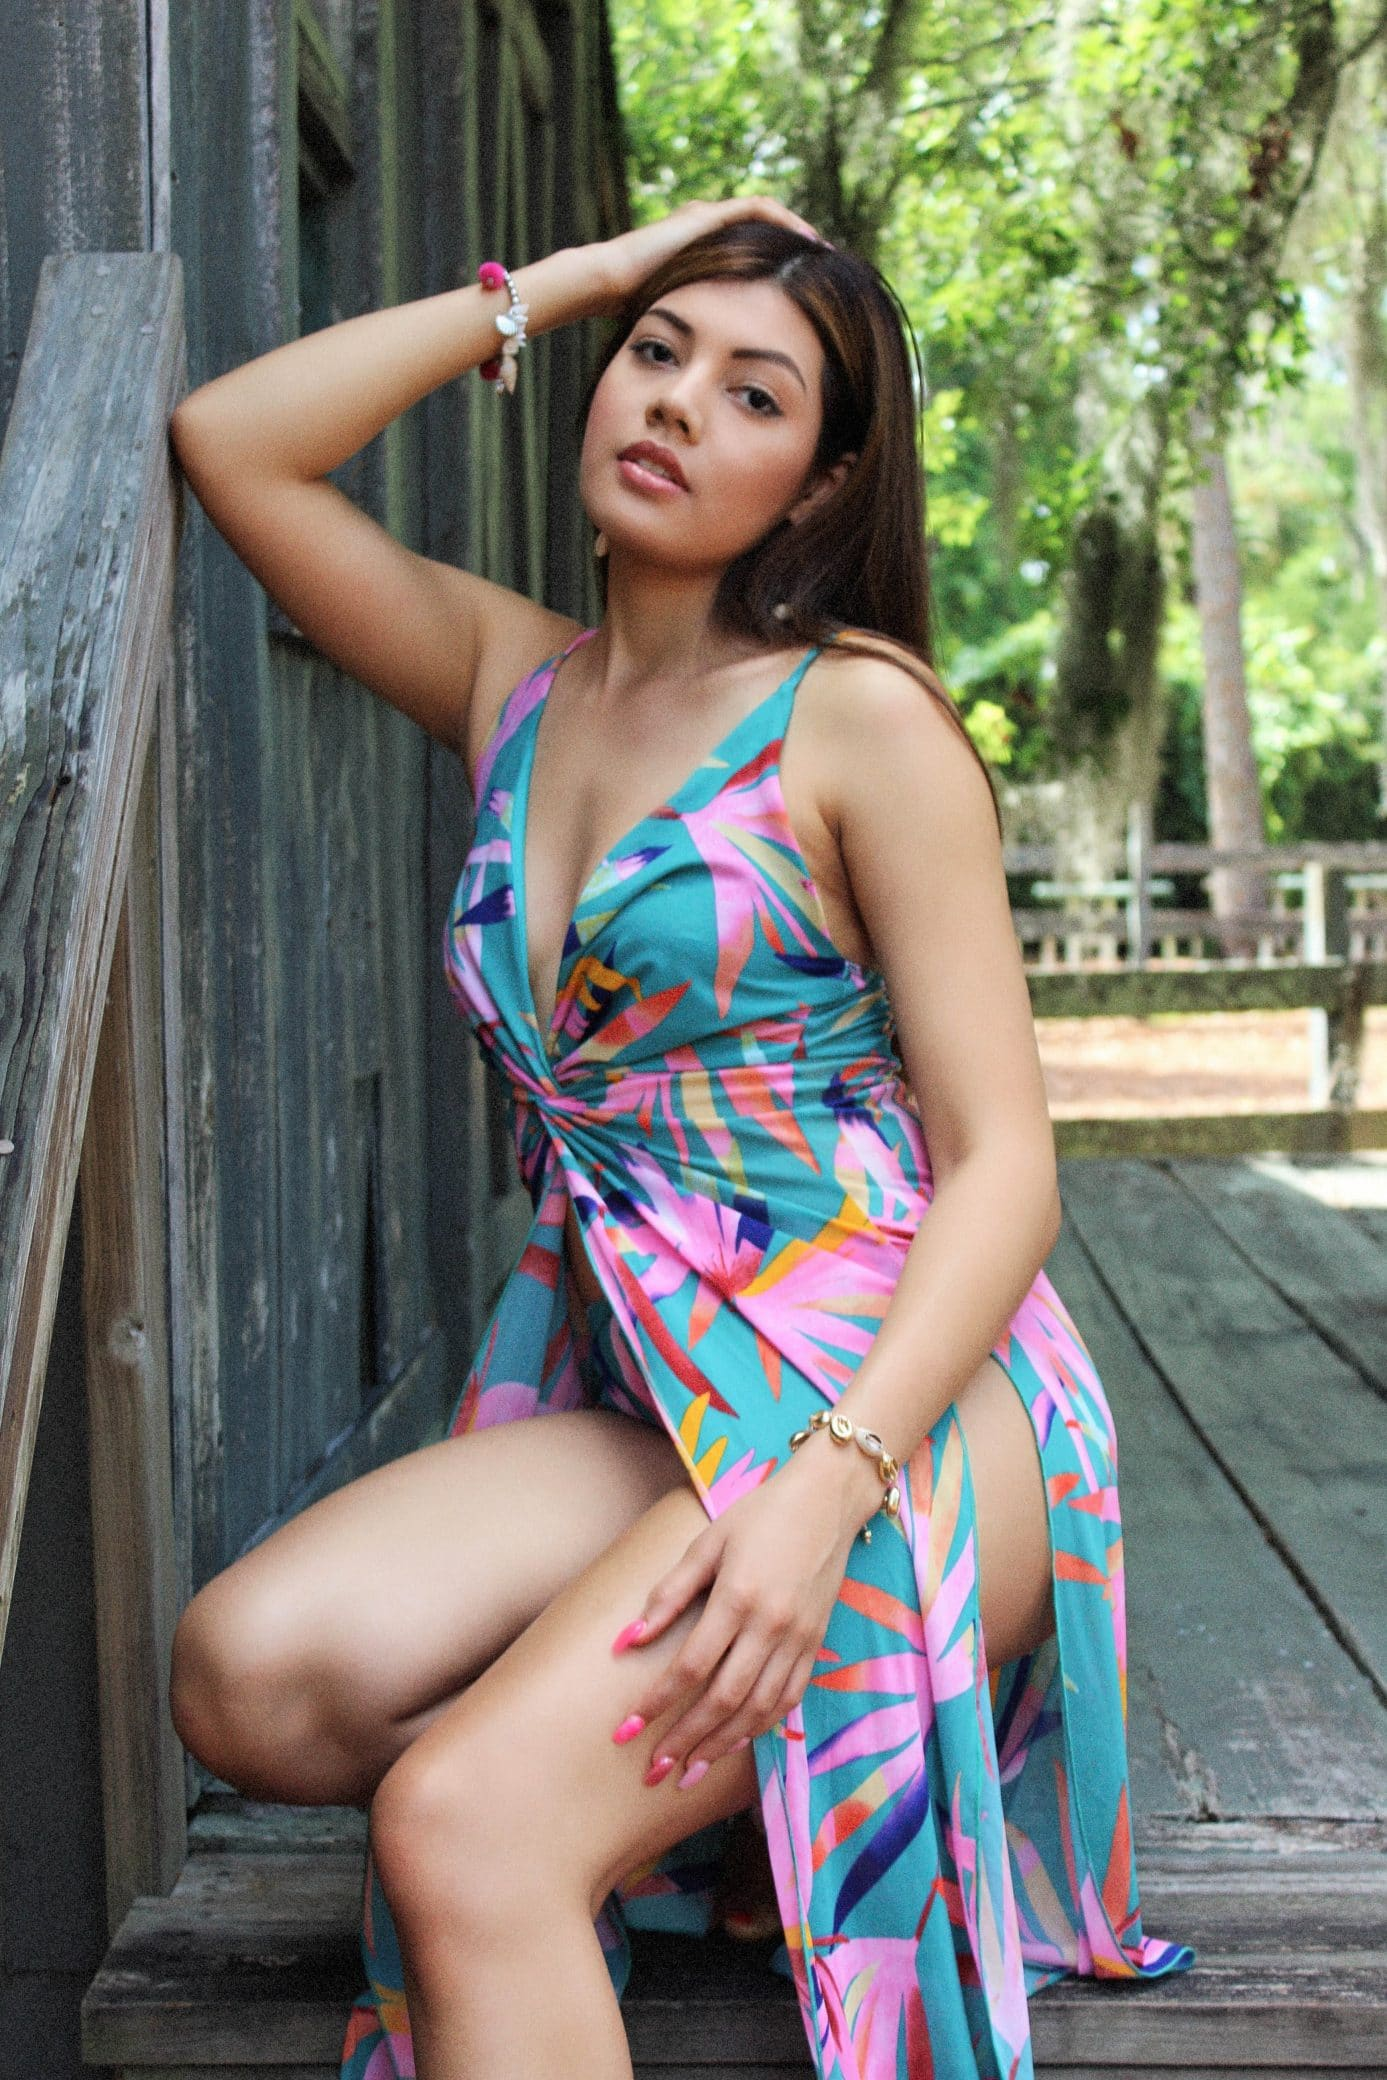 Beautiful woman Bryanna Quintero wearing an open colourful dress and jewelry  sitting with one arm up an red nail polish